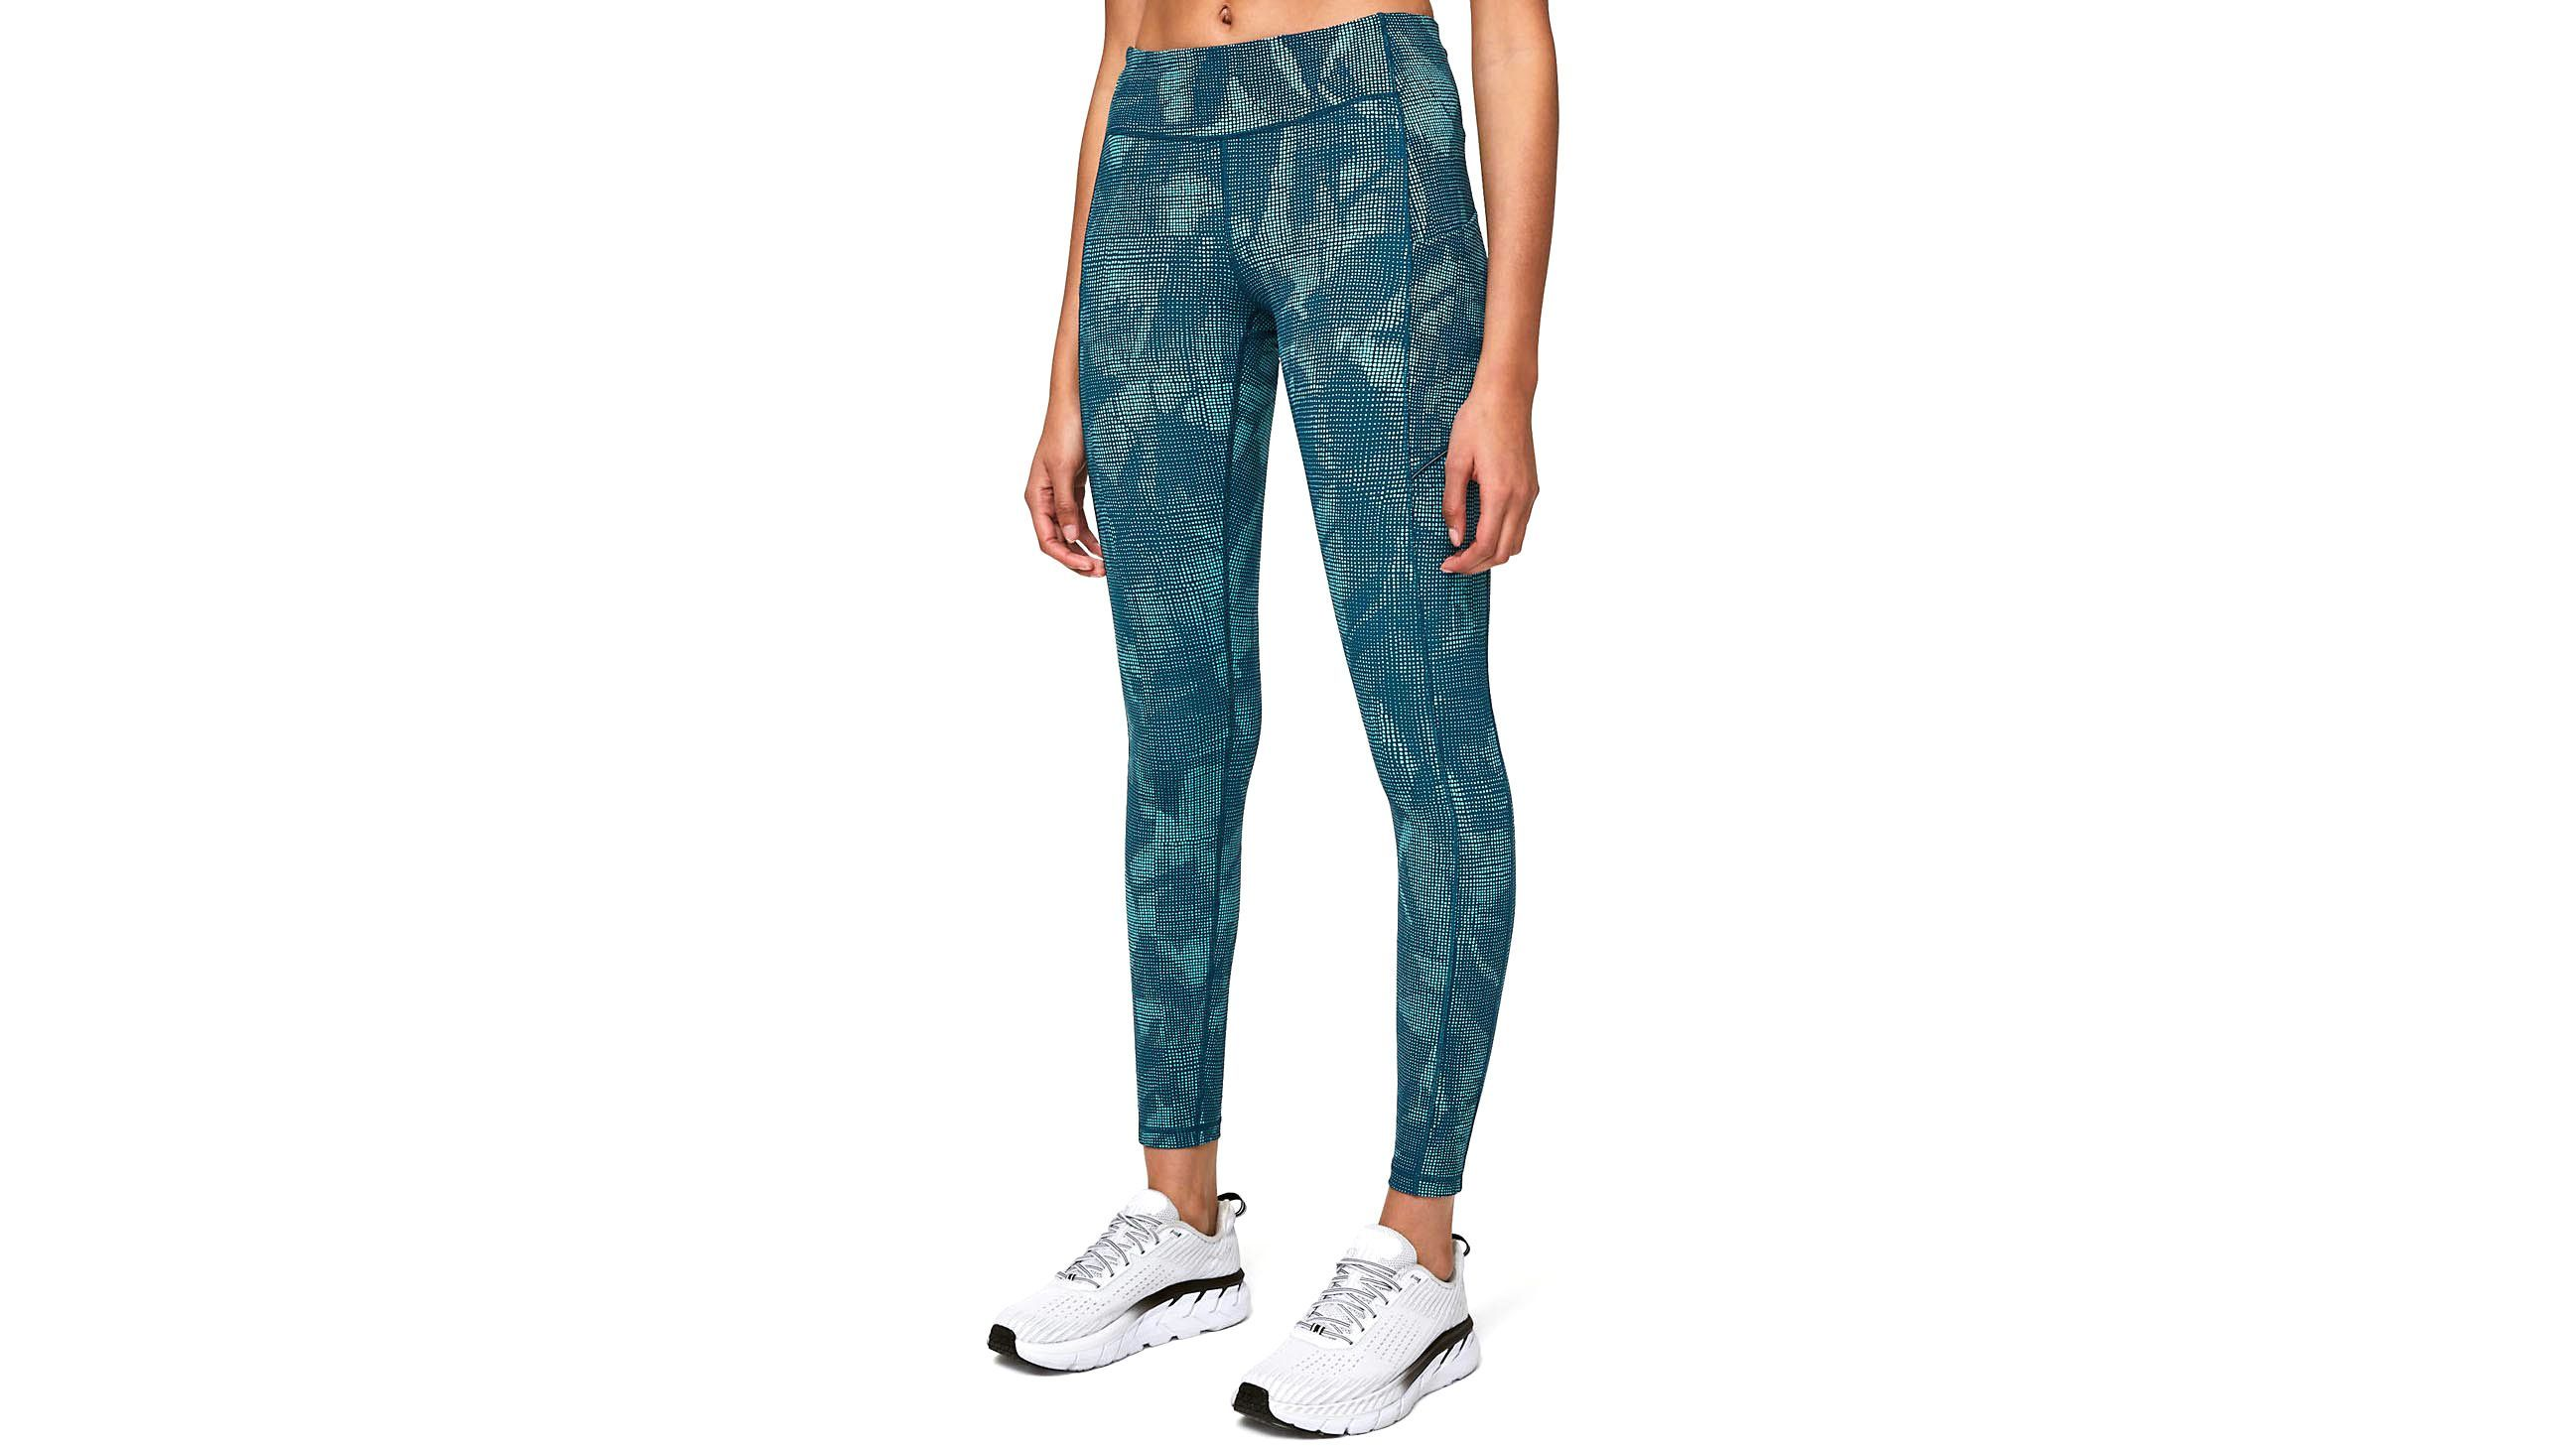 Leggings With Pockets 2019 | Best Tights for Running